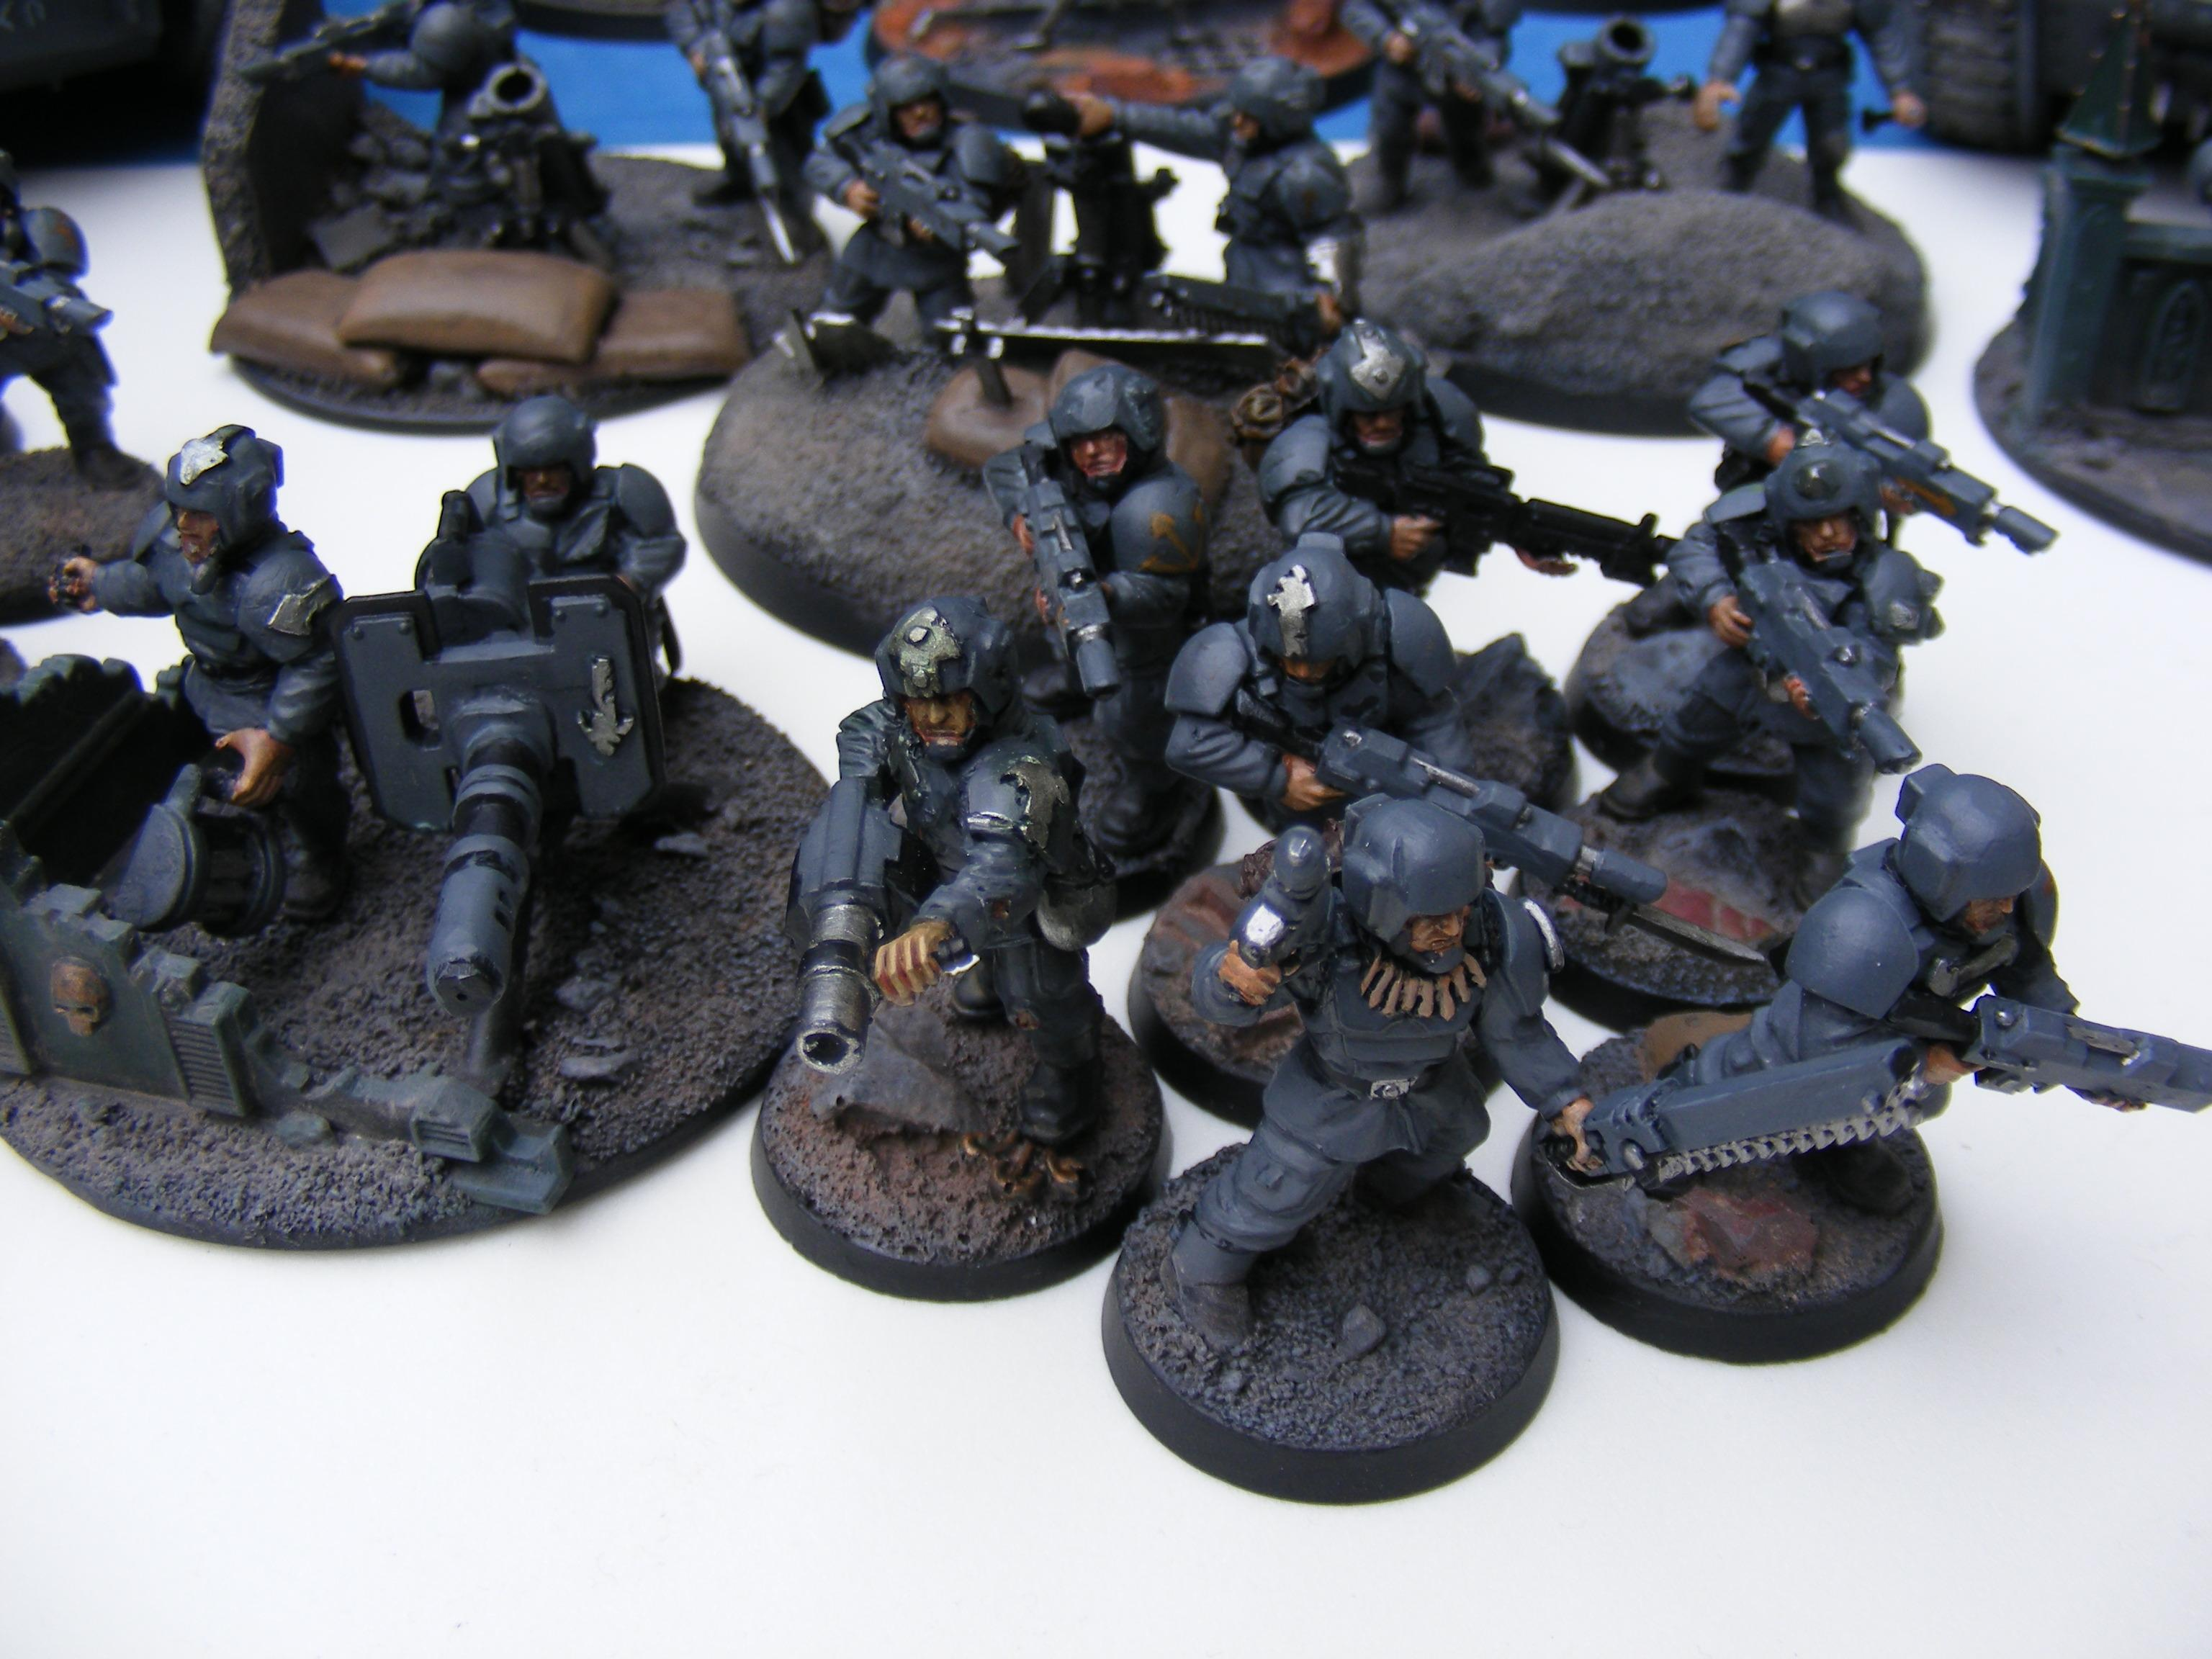 Chaos, Cultists, Imperial Guard, Lost And The Damned, Renegades, Traitor, Traitor Guard, Warhammer 40,000